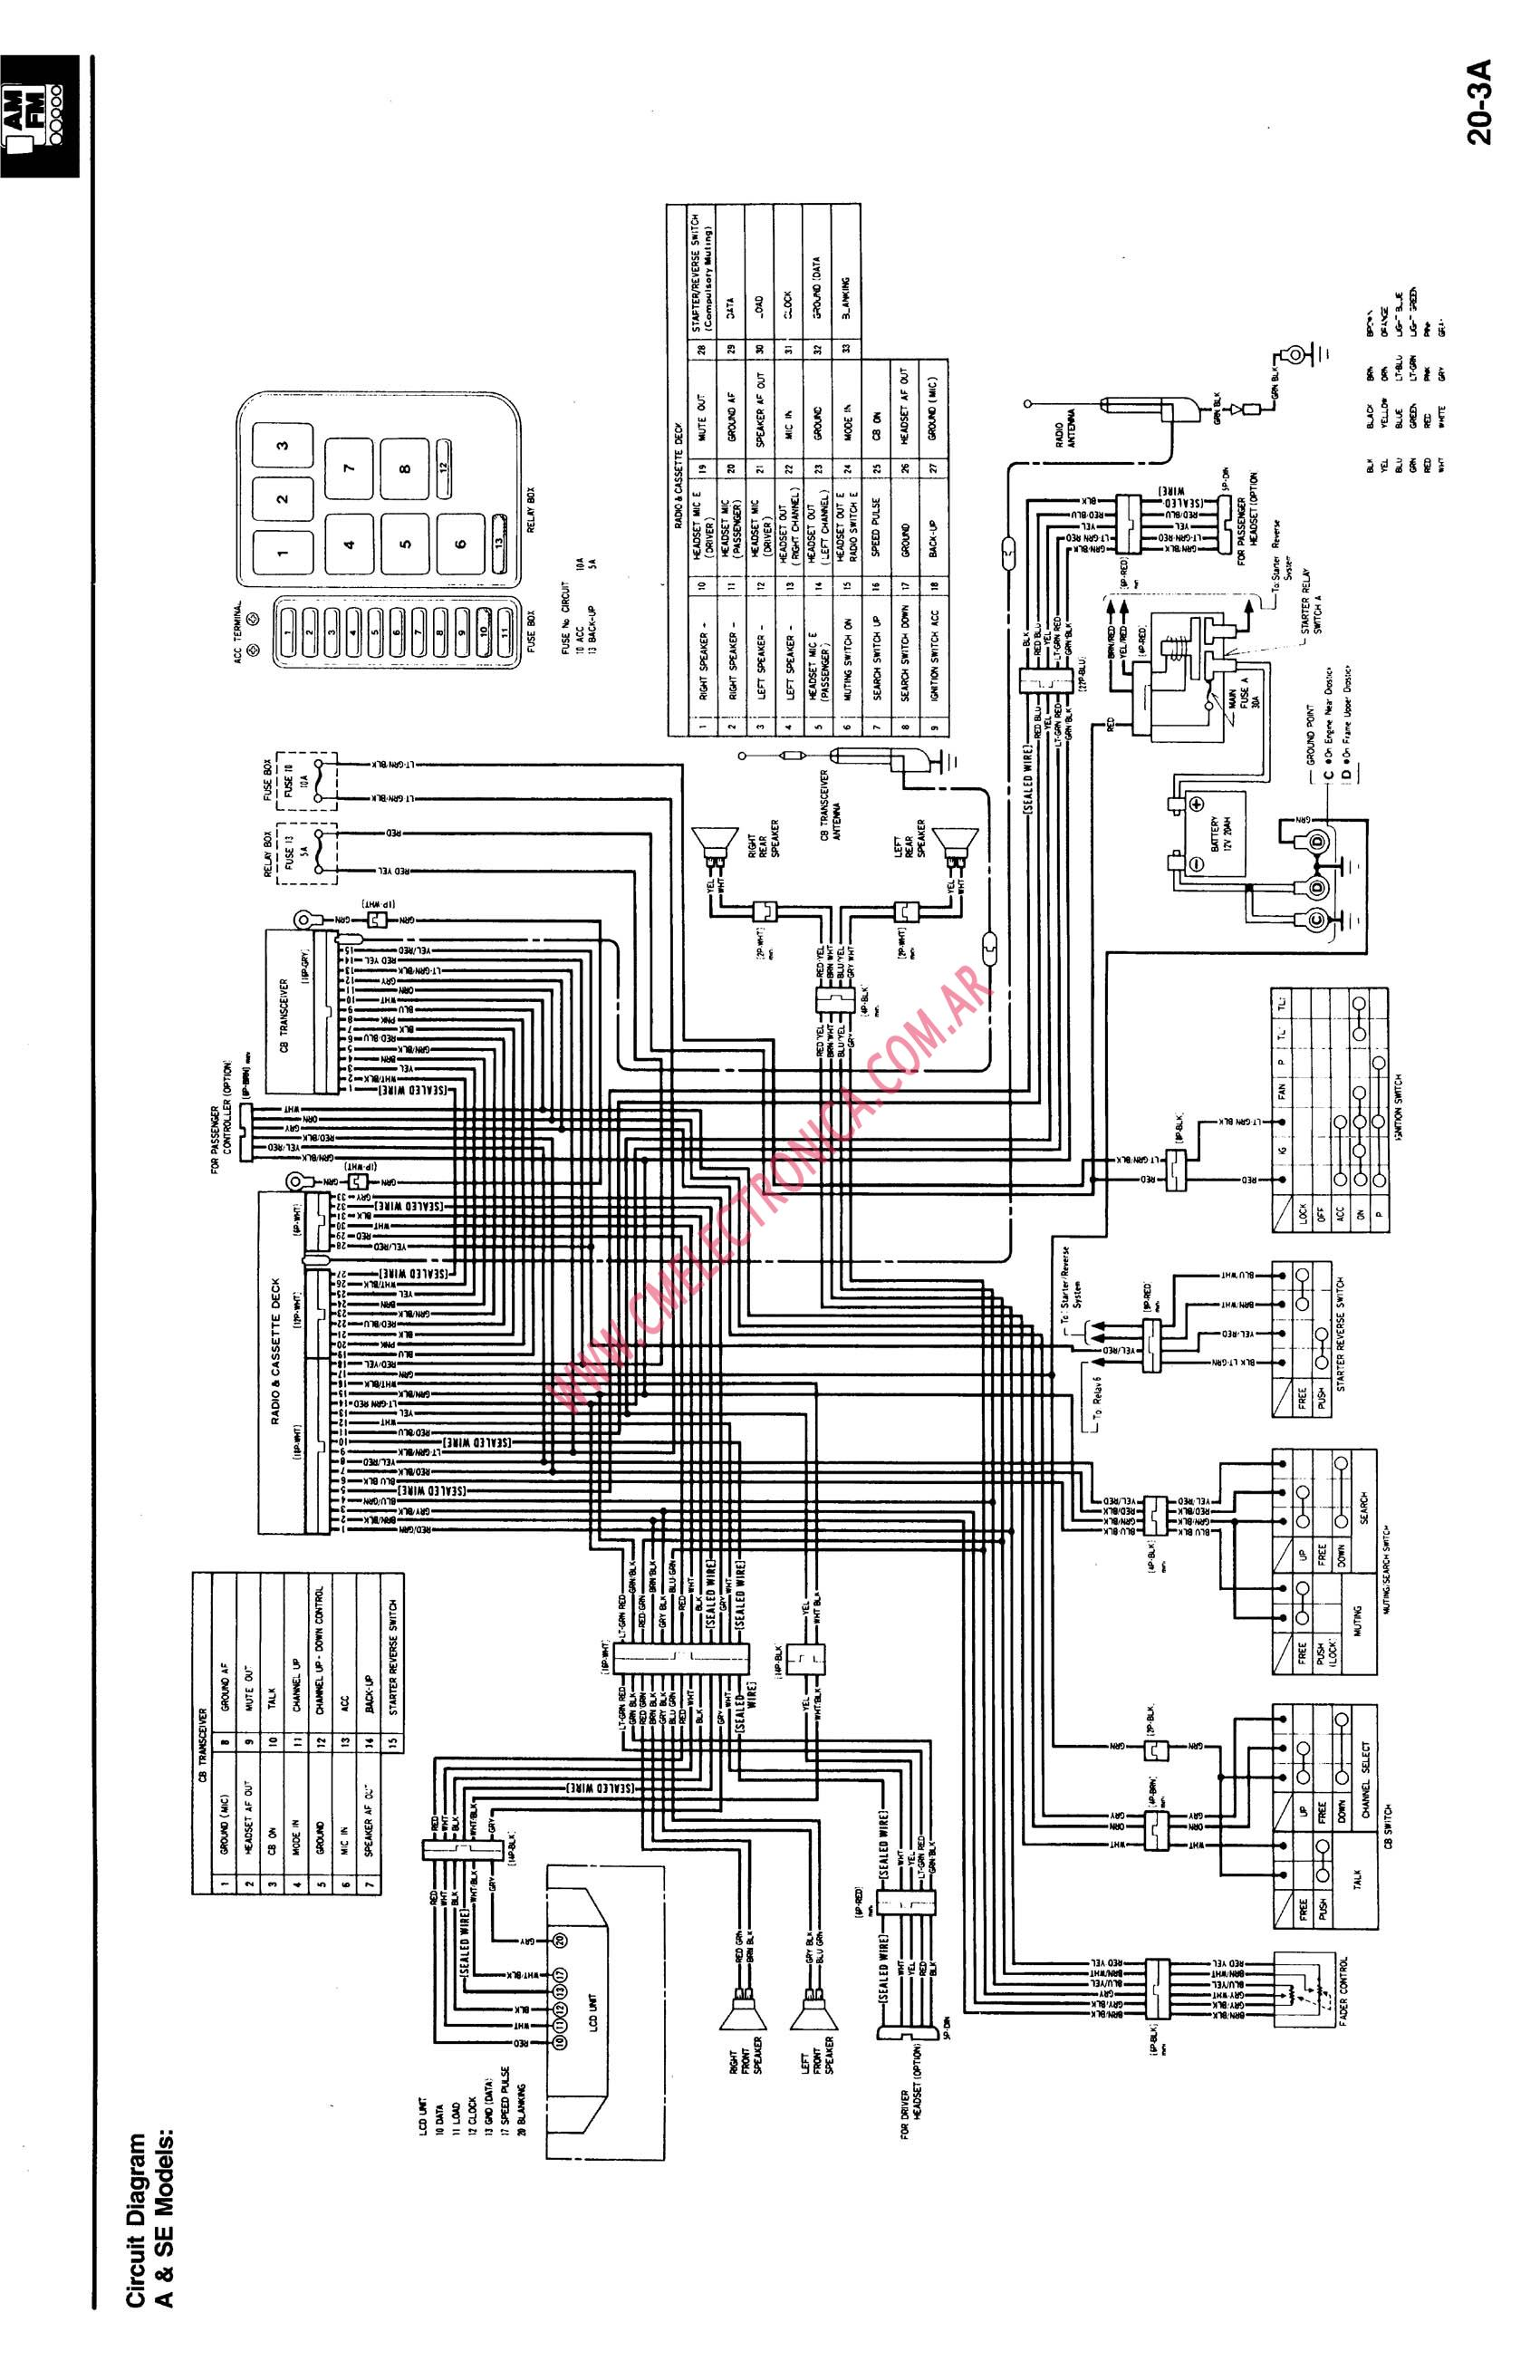 Gl1500 Headset Wiring Diagram All Kind Of Diagrams 2003 Honda Goldwing Diagrama Rh Cmelectronica Com Ar Gl1800 Cb